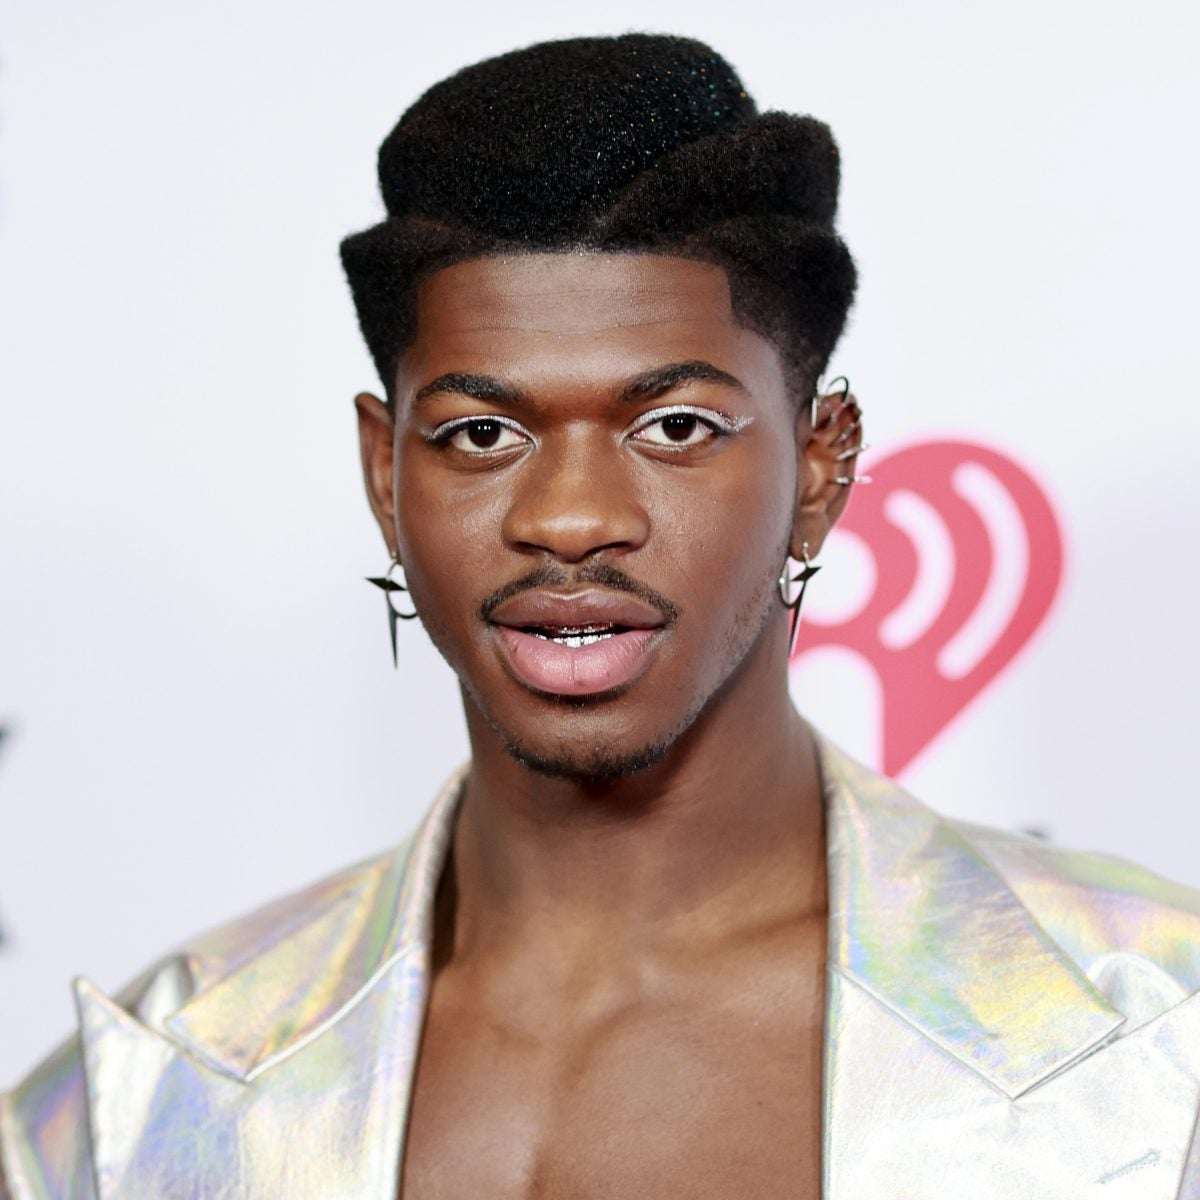 Lil Nas X Proves He's The King Of Marketing With 'Industry Baby' Promo